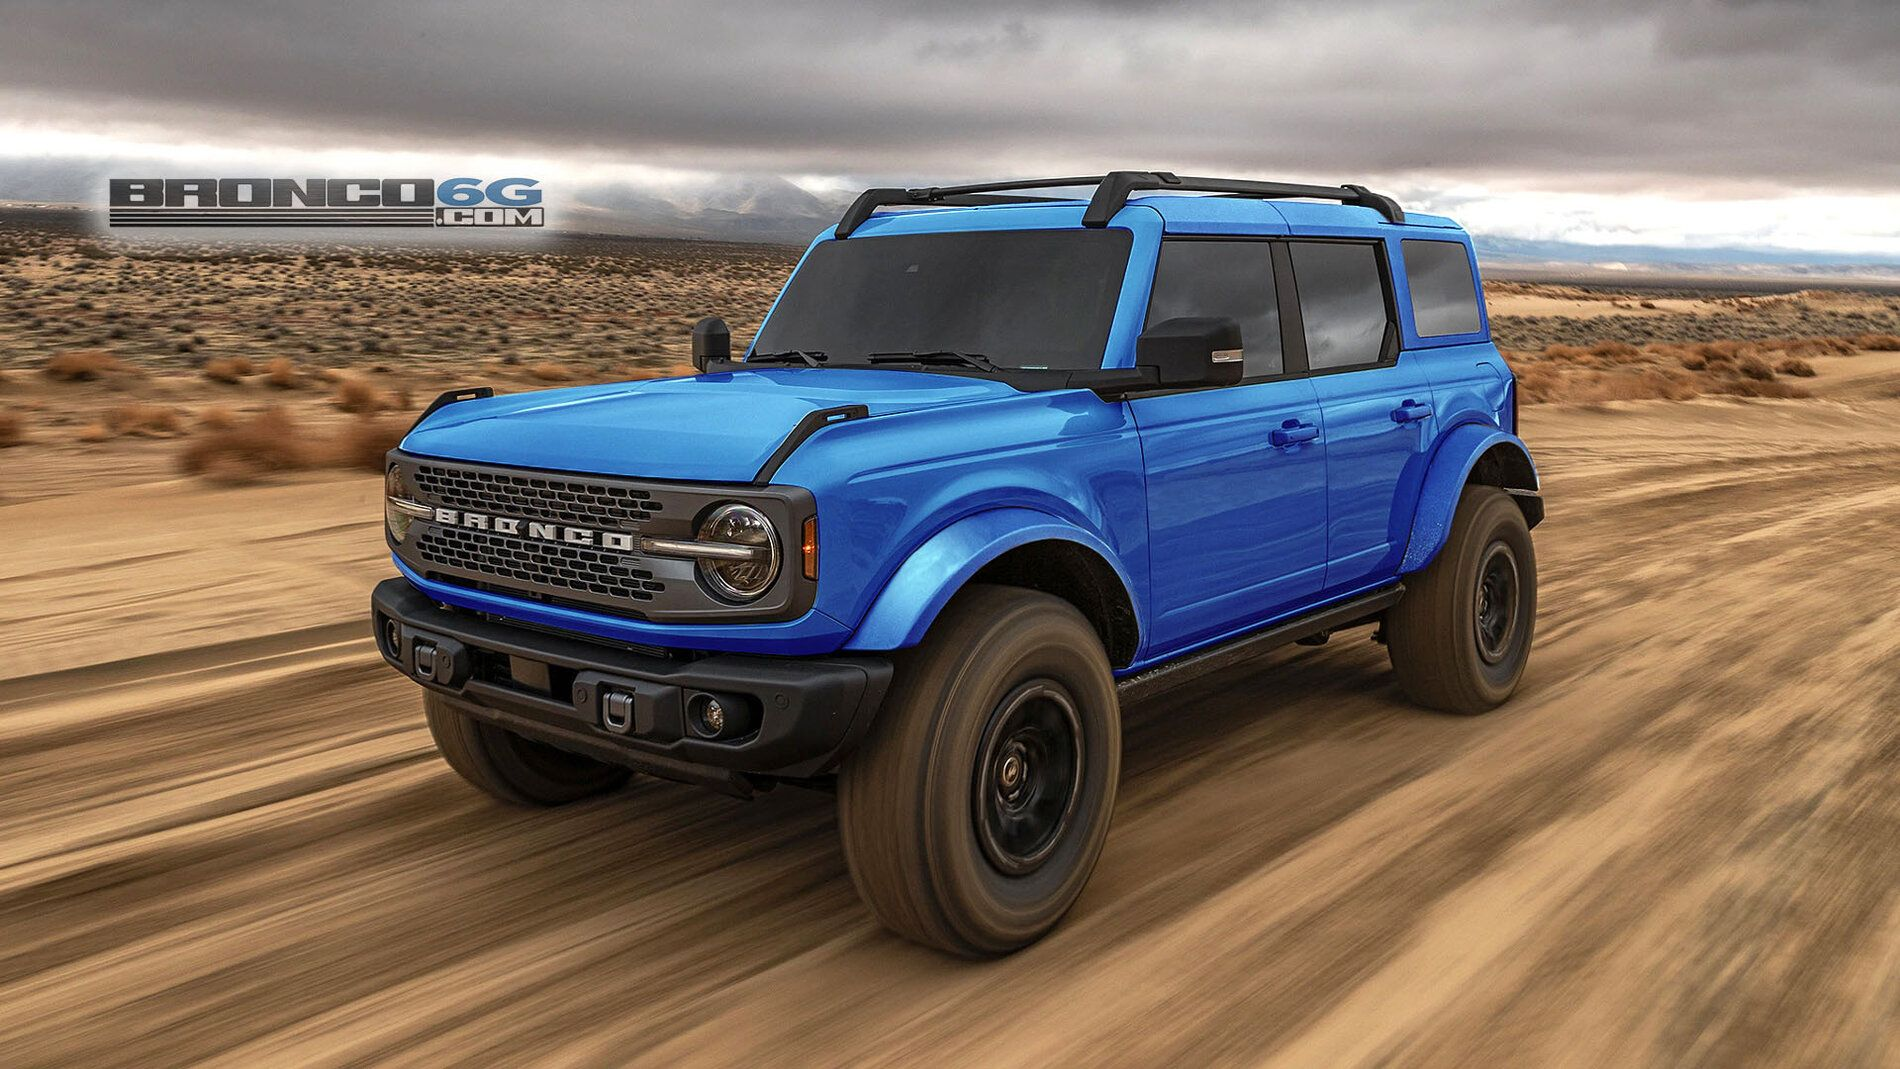 Our Latest Simulated Bronco Sasquatch In Production Colors White Tops Fenders Bronco6g 2021 Ford Bronco Forum News B Bronco New Bronco Fender Flares